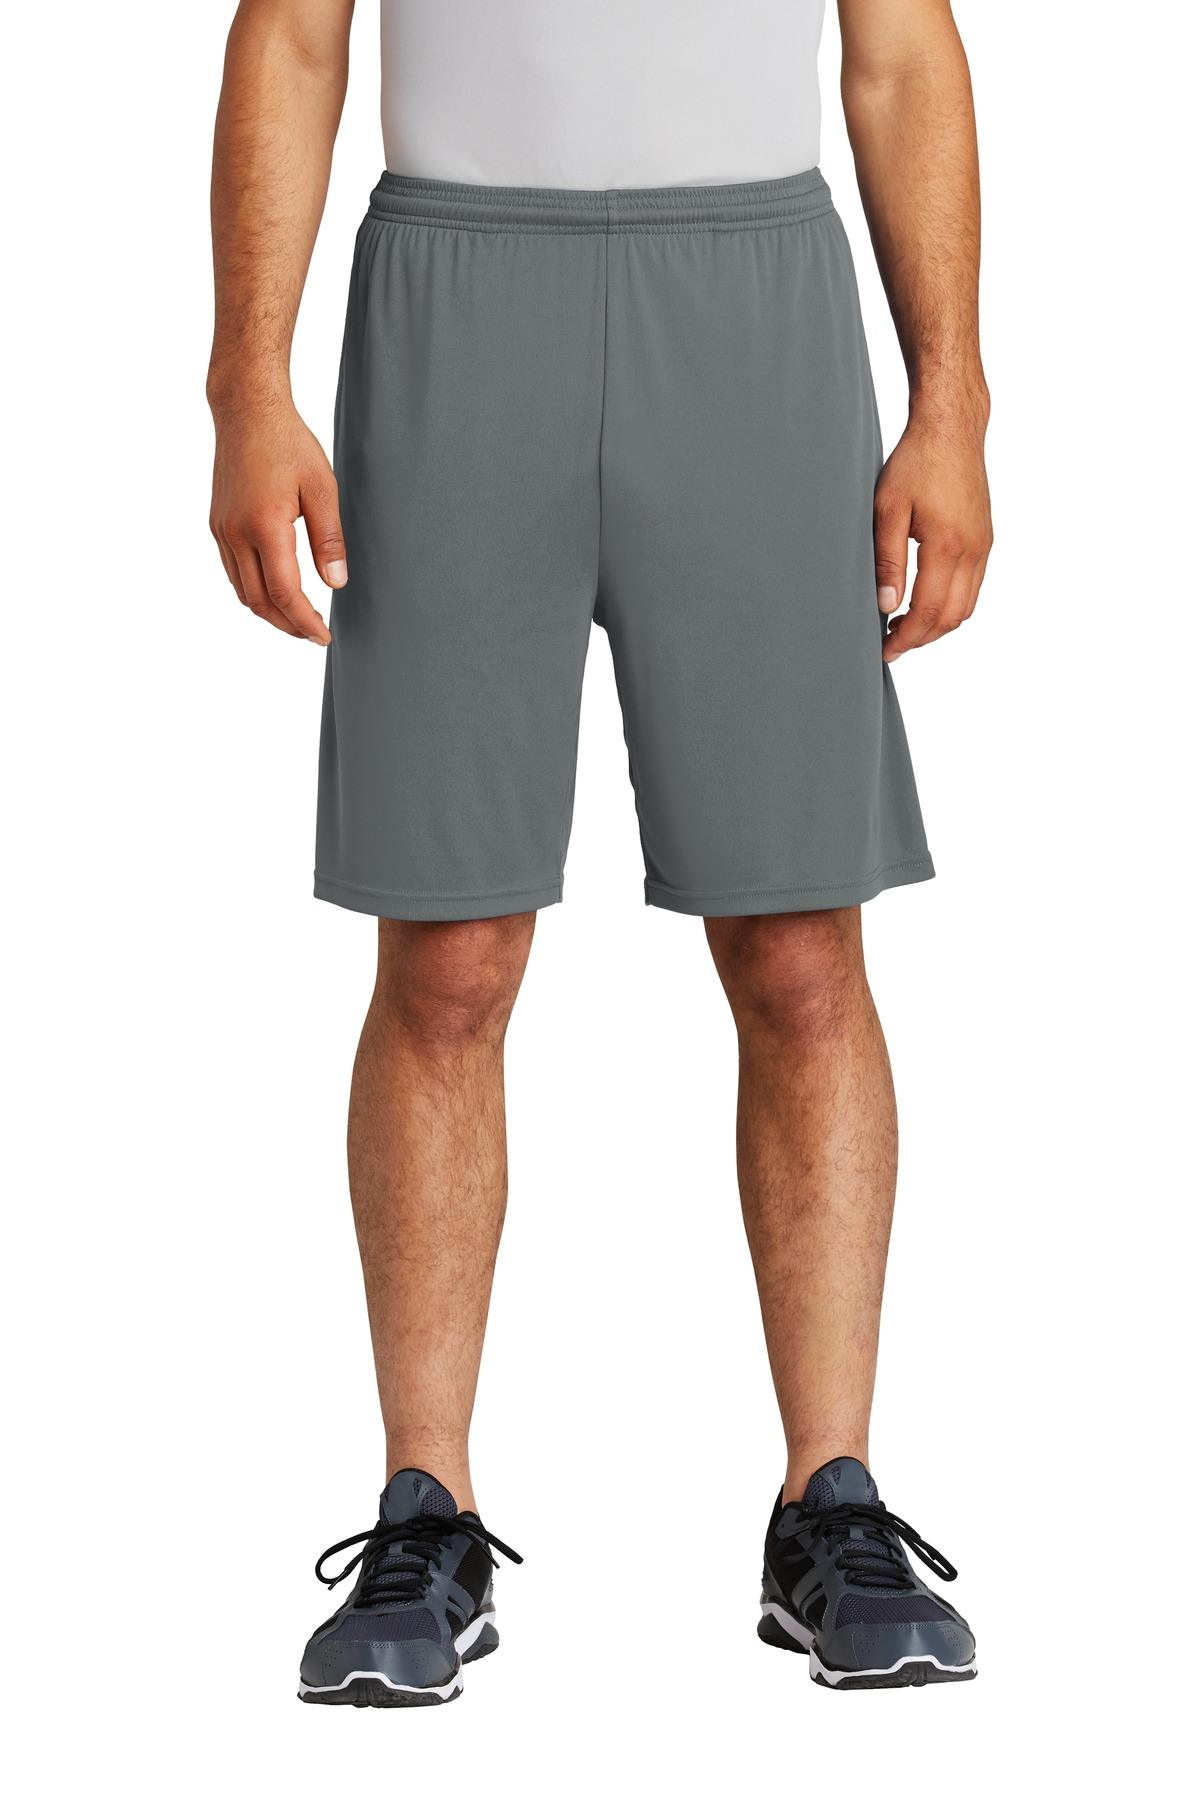 Sport-Tek  ®  PosiCharge  ®  Competitor  ™  Pocketed Short. ST355P - Iron Grey